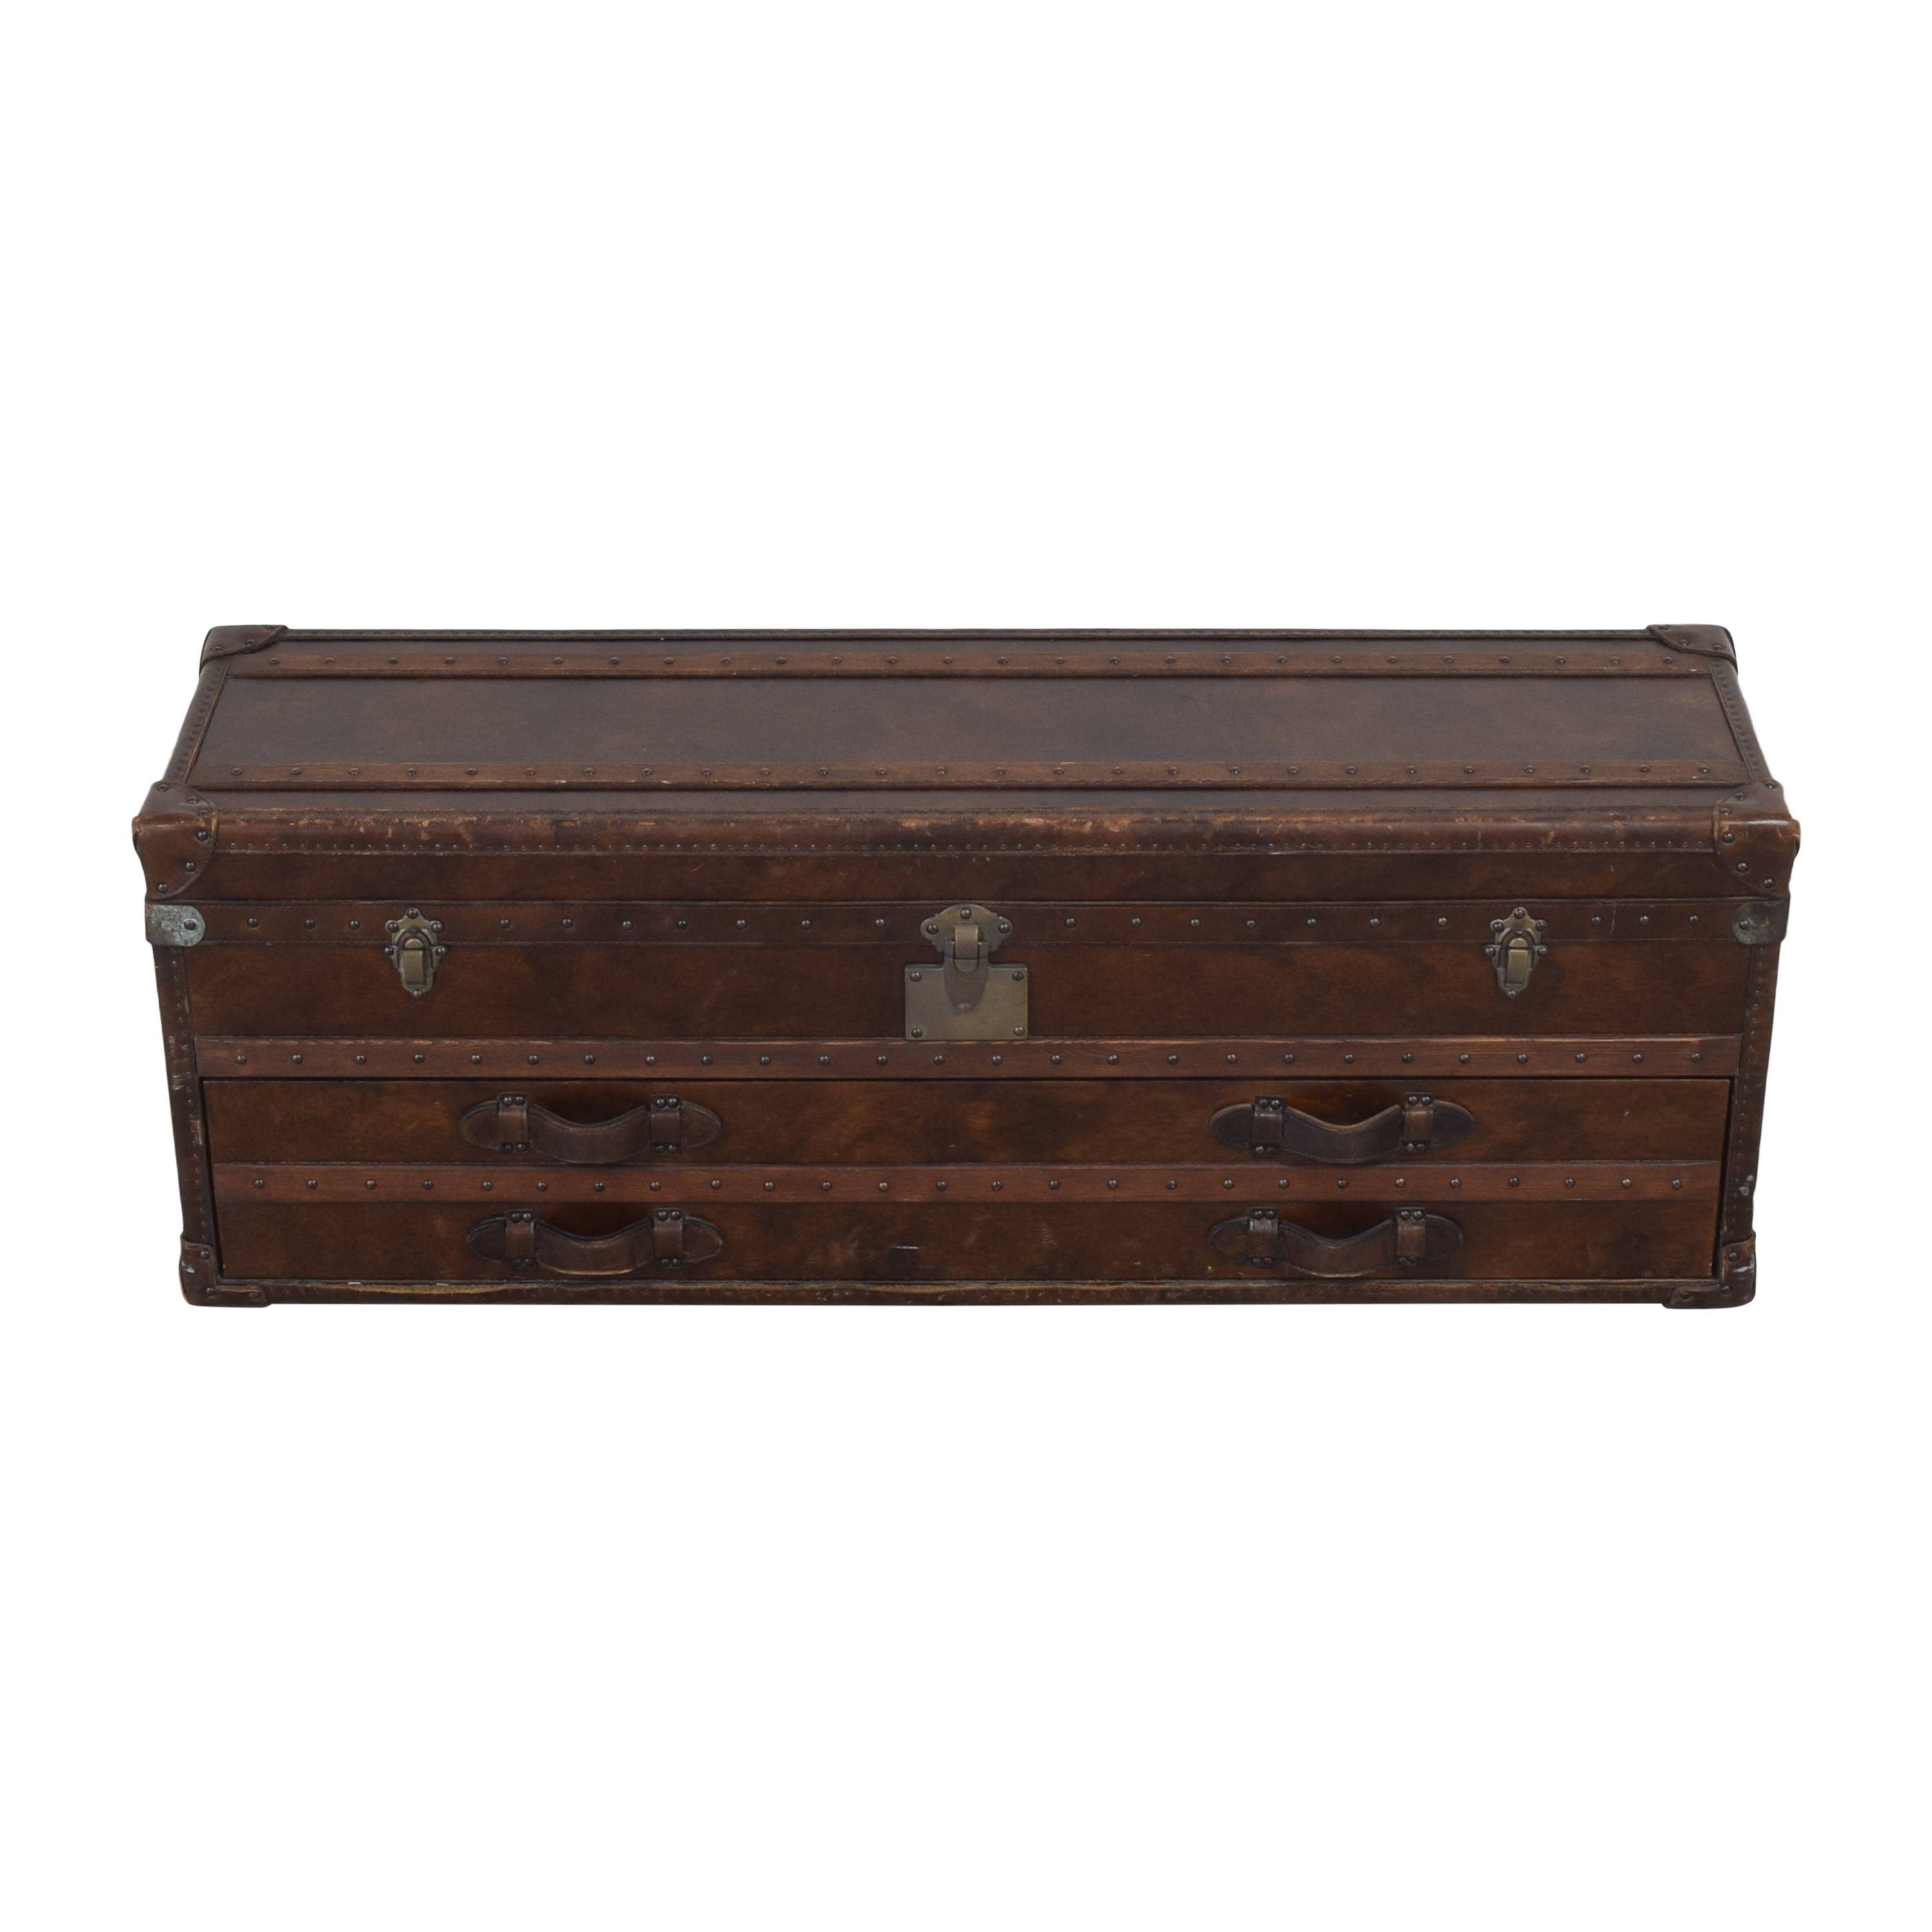 Restoration Hardware Restoration Hardware Mayfair Steamer Trunk Low Chest on sale